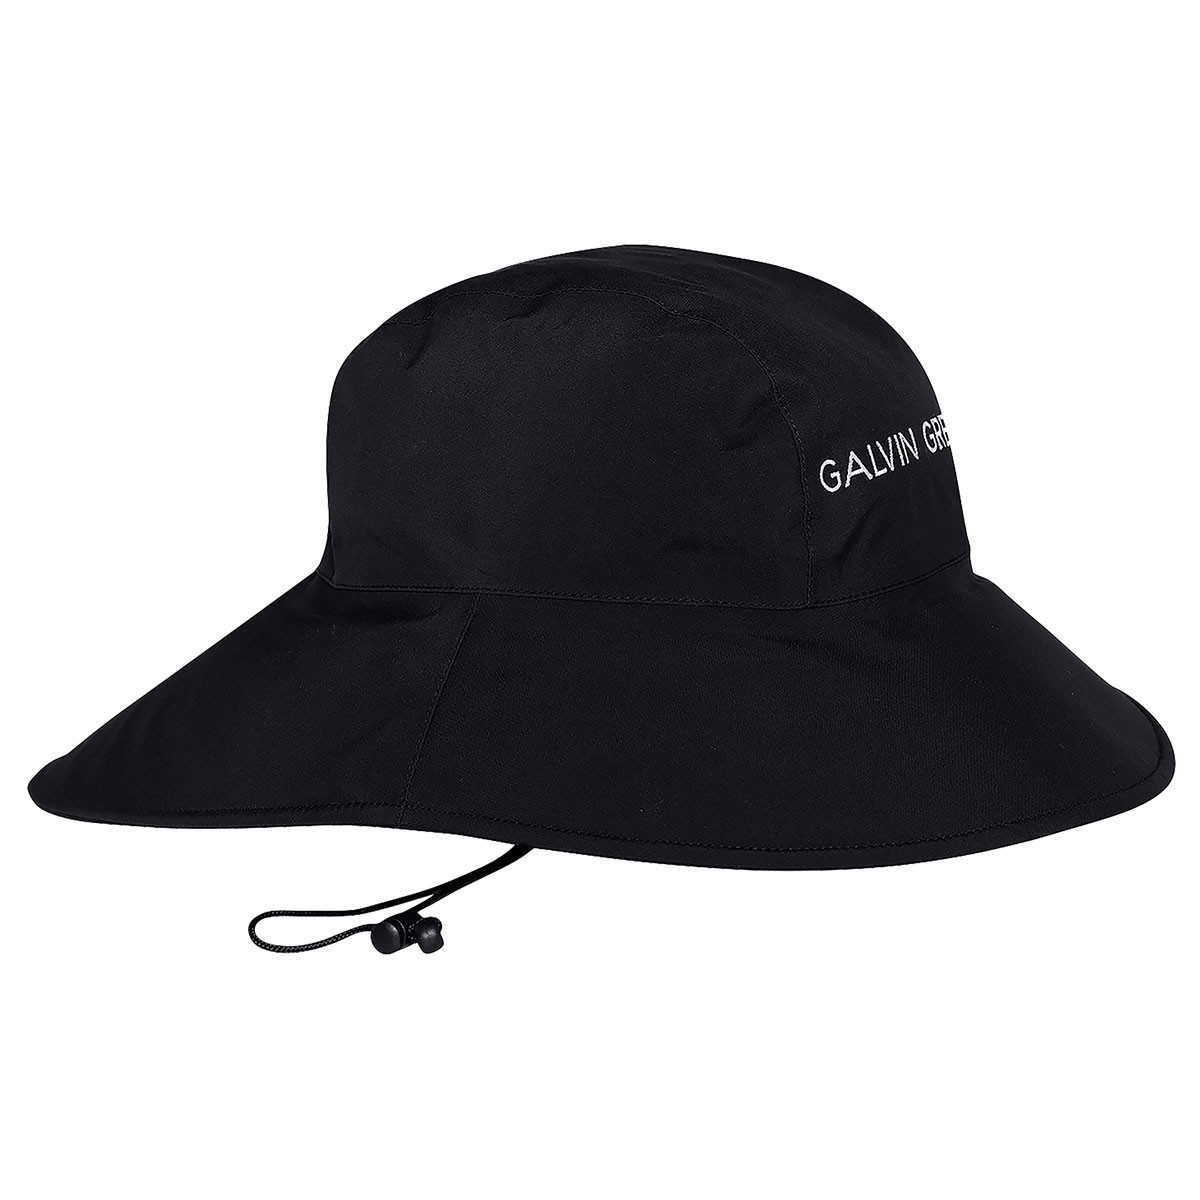 319cc9dcf64 Galvin Green Mens SS19 Waterproof Aqua Gore-Tex Golf Bucket Hat